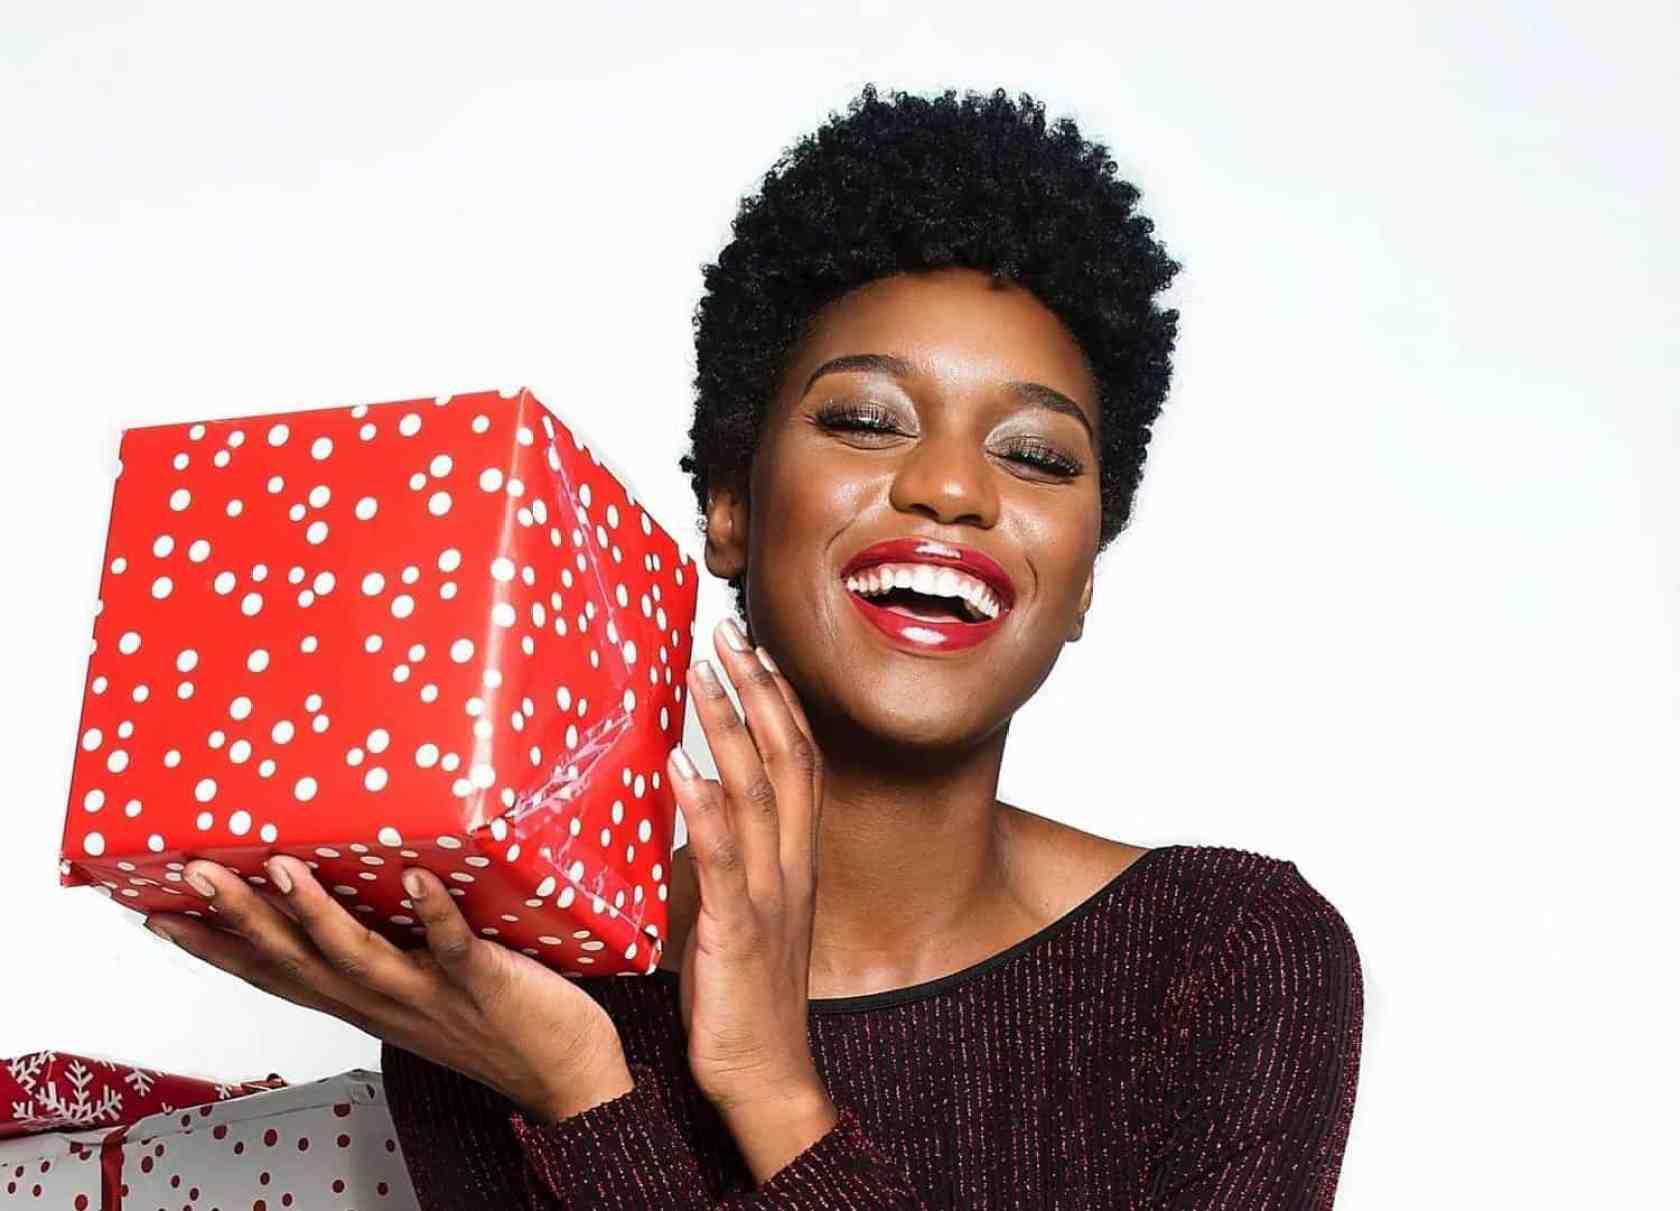 With the conversation turning to climate change, it's become quite a challenge to buy gifts without feeling guilty. Here are some climate-friendly gifting ideas that would make Gretha Thunberg smile.